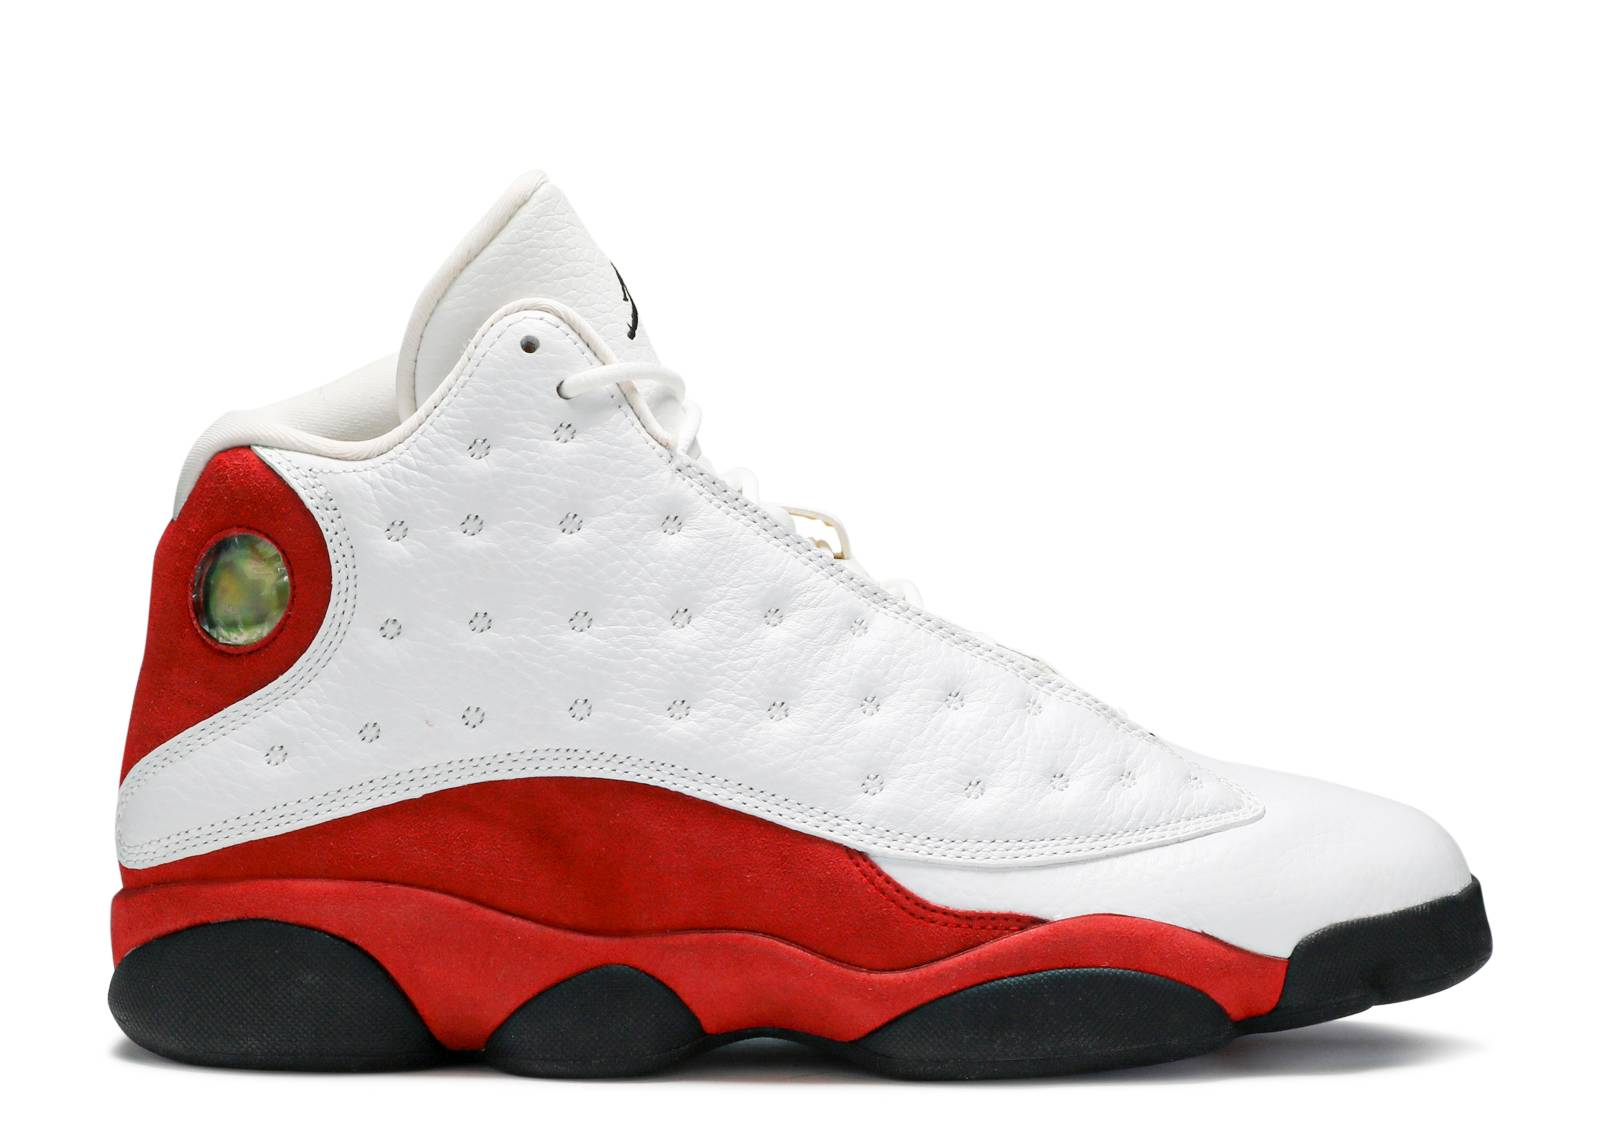 official photos da3cc 3b9c4 air jordan 13 retro